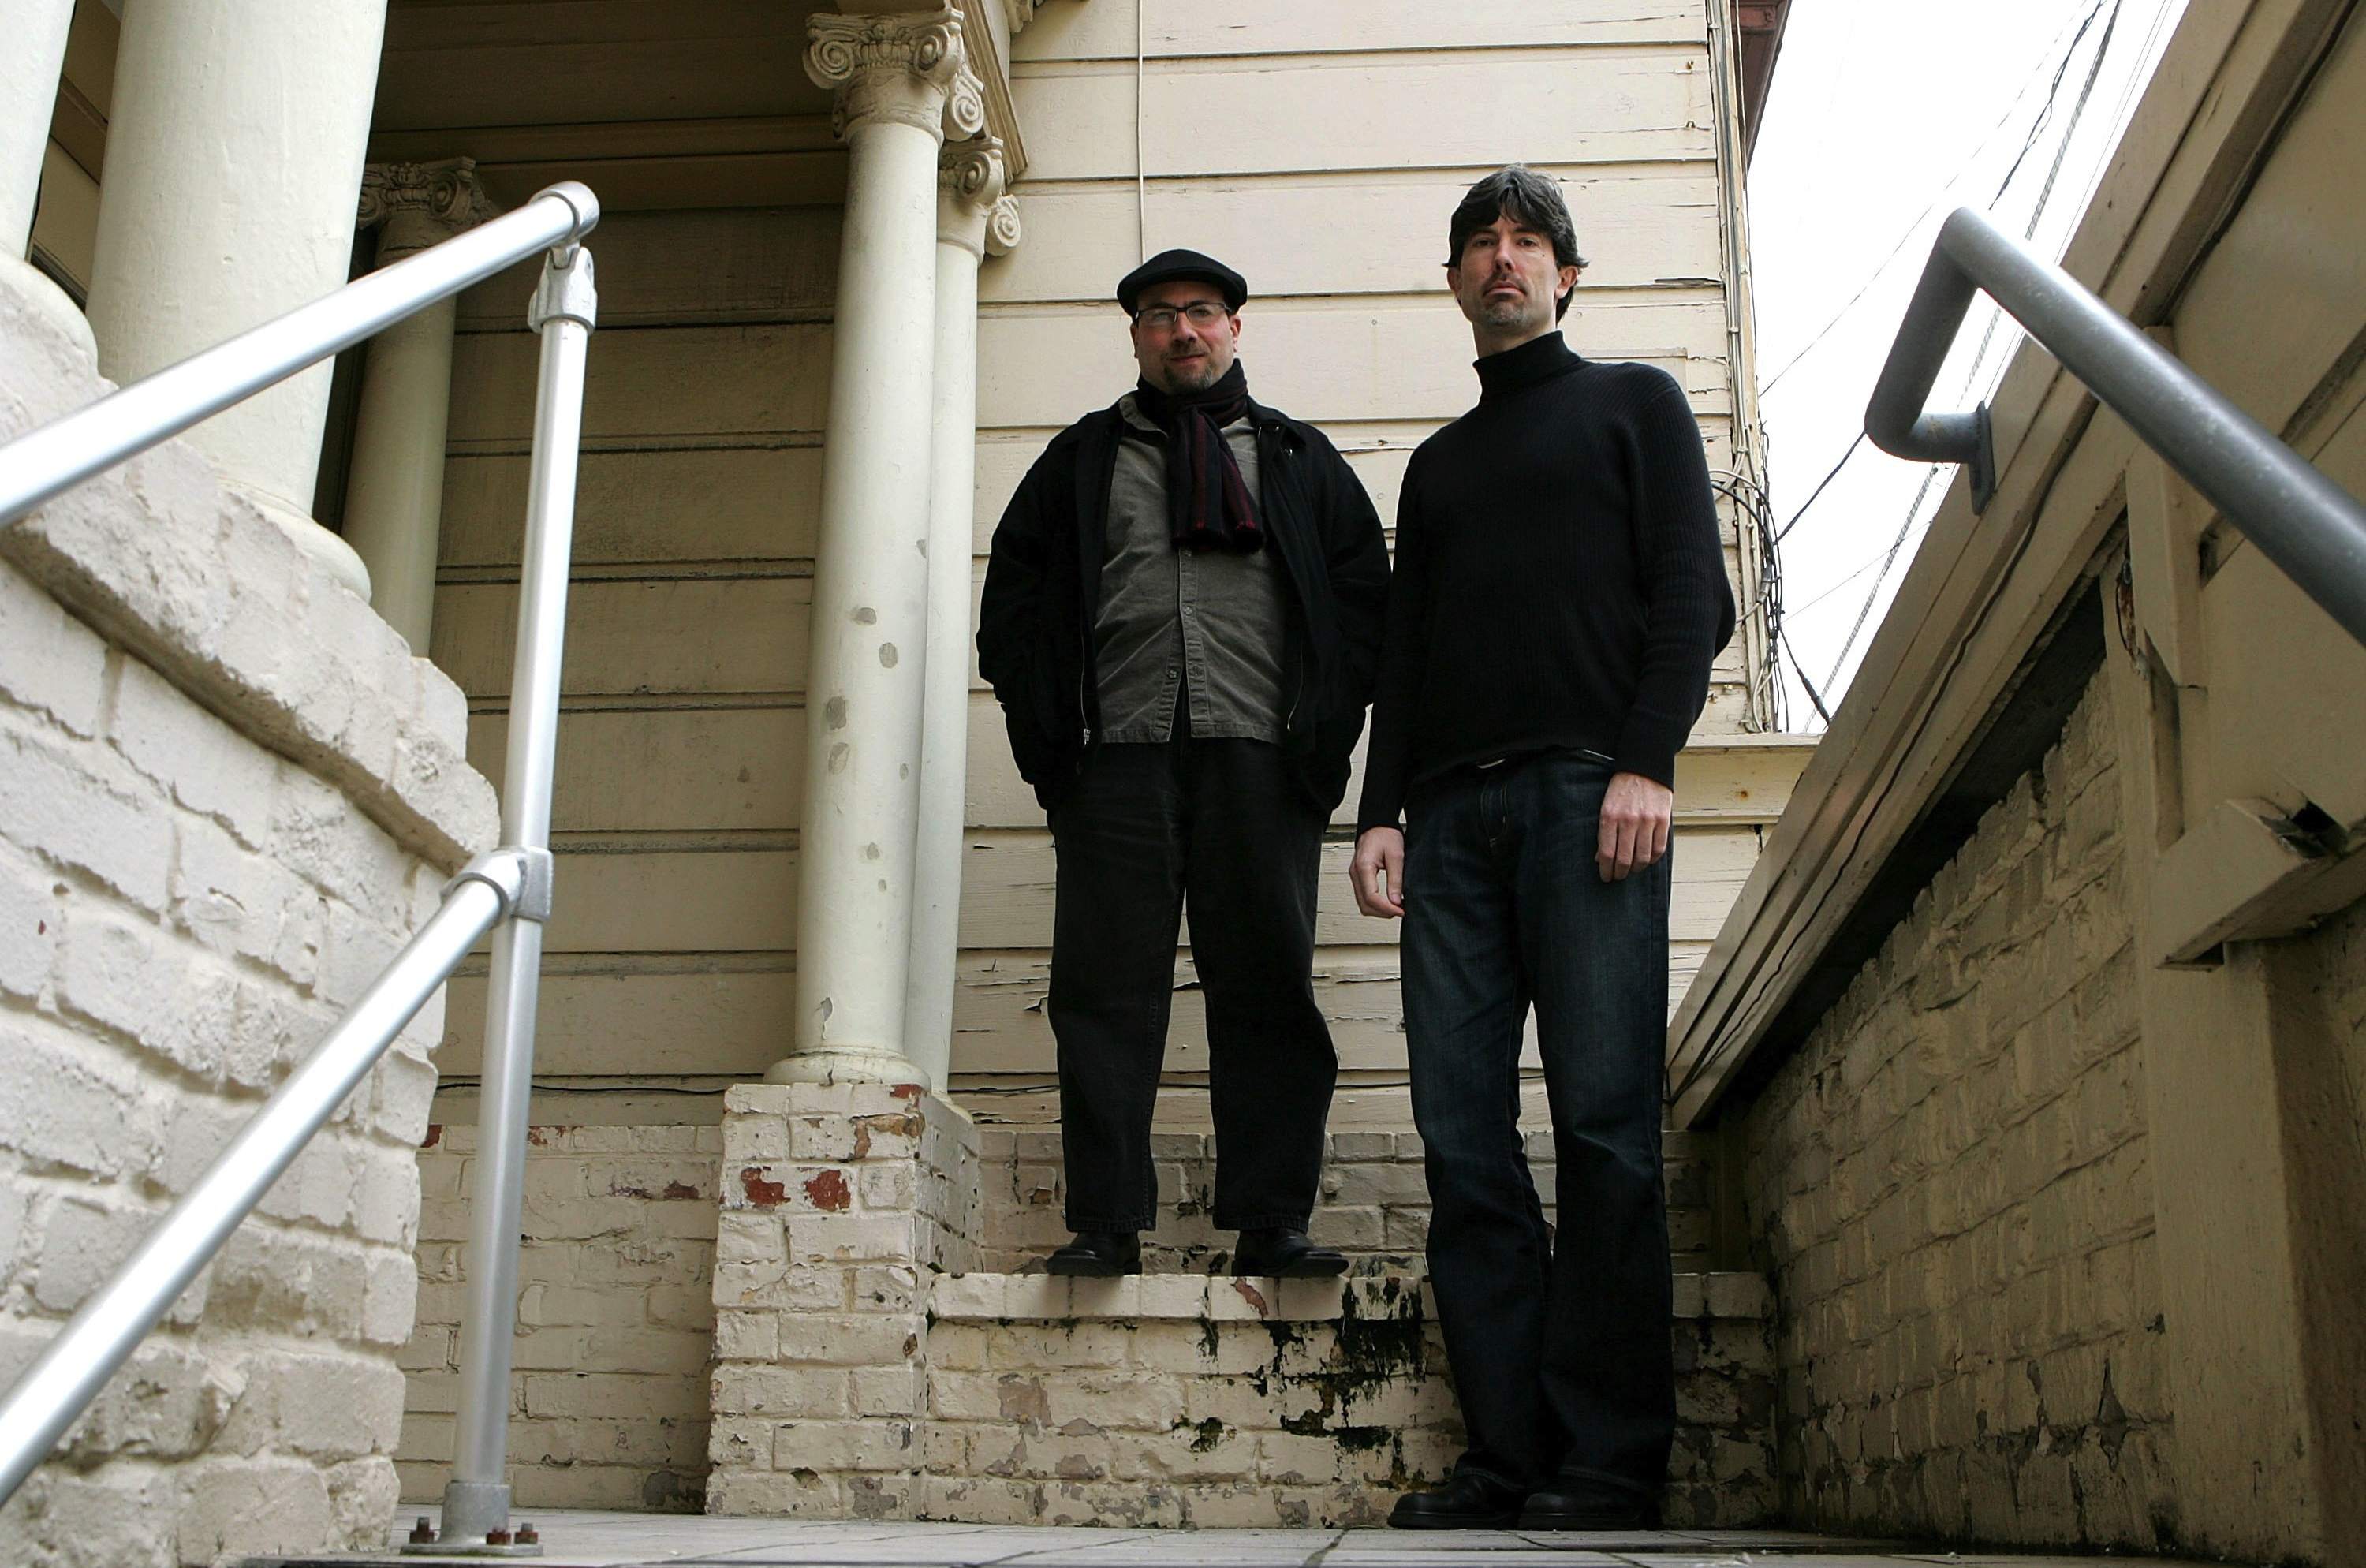 Craigslist founder, Craig Newmark, left, and Craigslist CEO Jim Buckmaster, shown in front of the company's offices in this file photo. Craigslist filed a high-profile lawsuit against scraping sites last year.